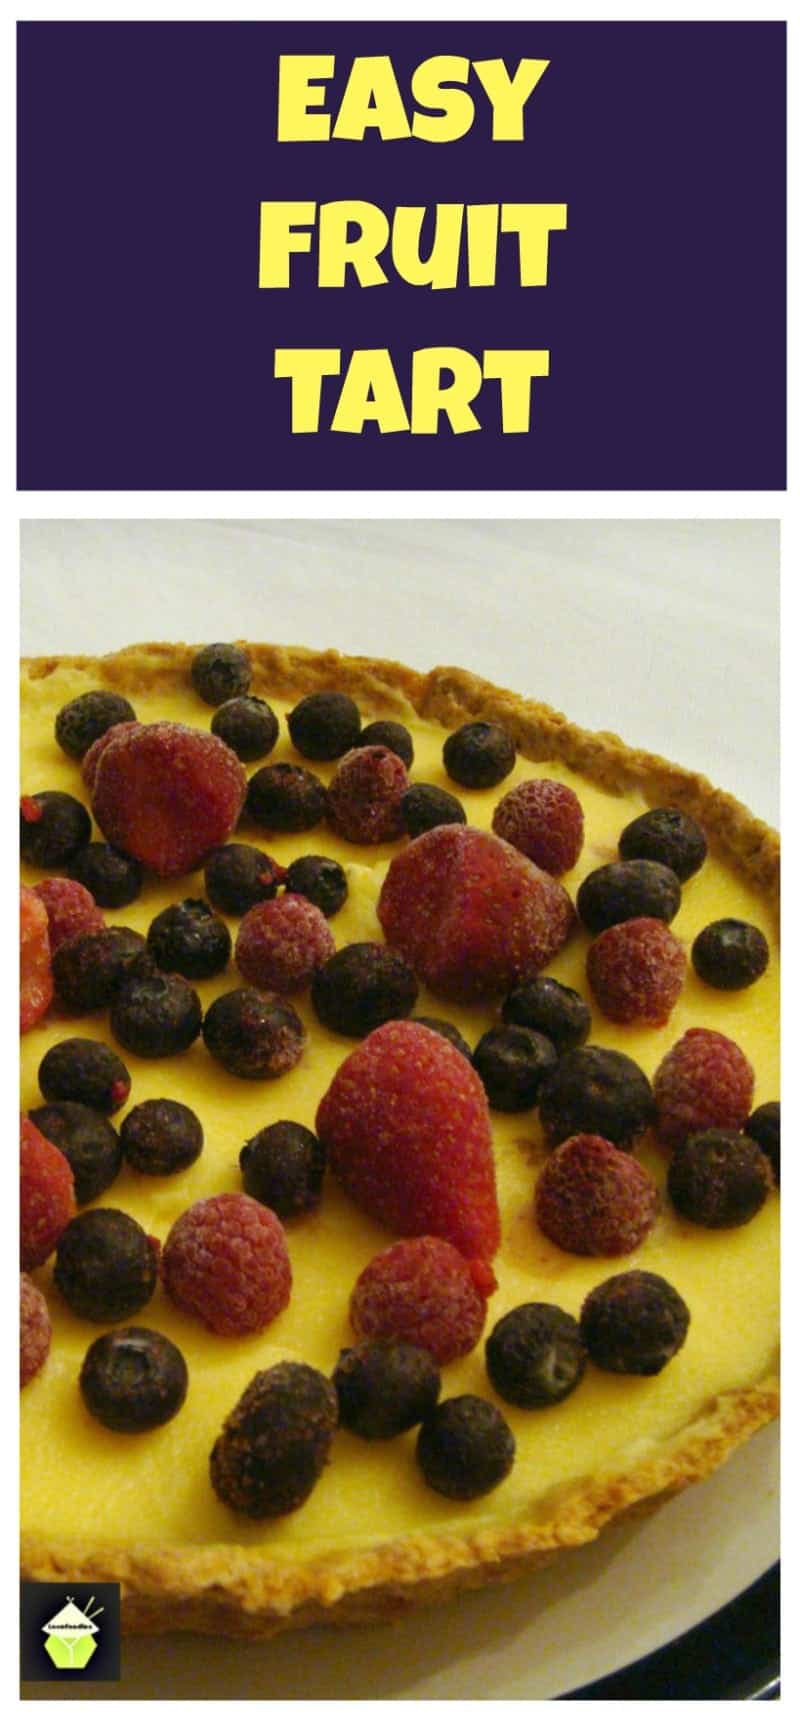 Fruit Tart - Easy to make and oh so delicious! Choose your favorite fruits / berries for the top too!